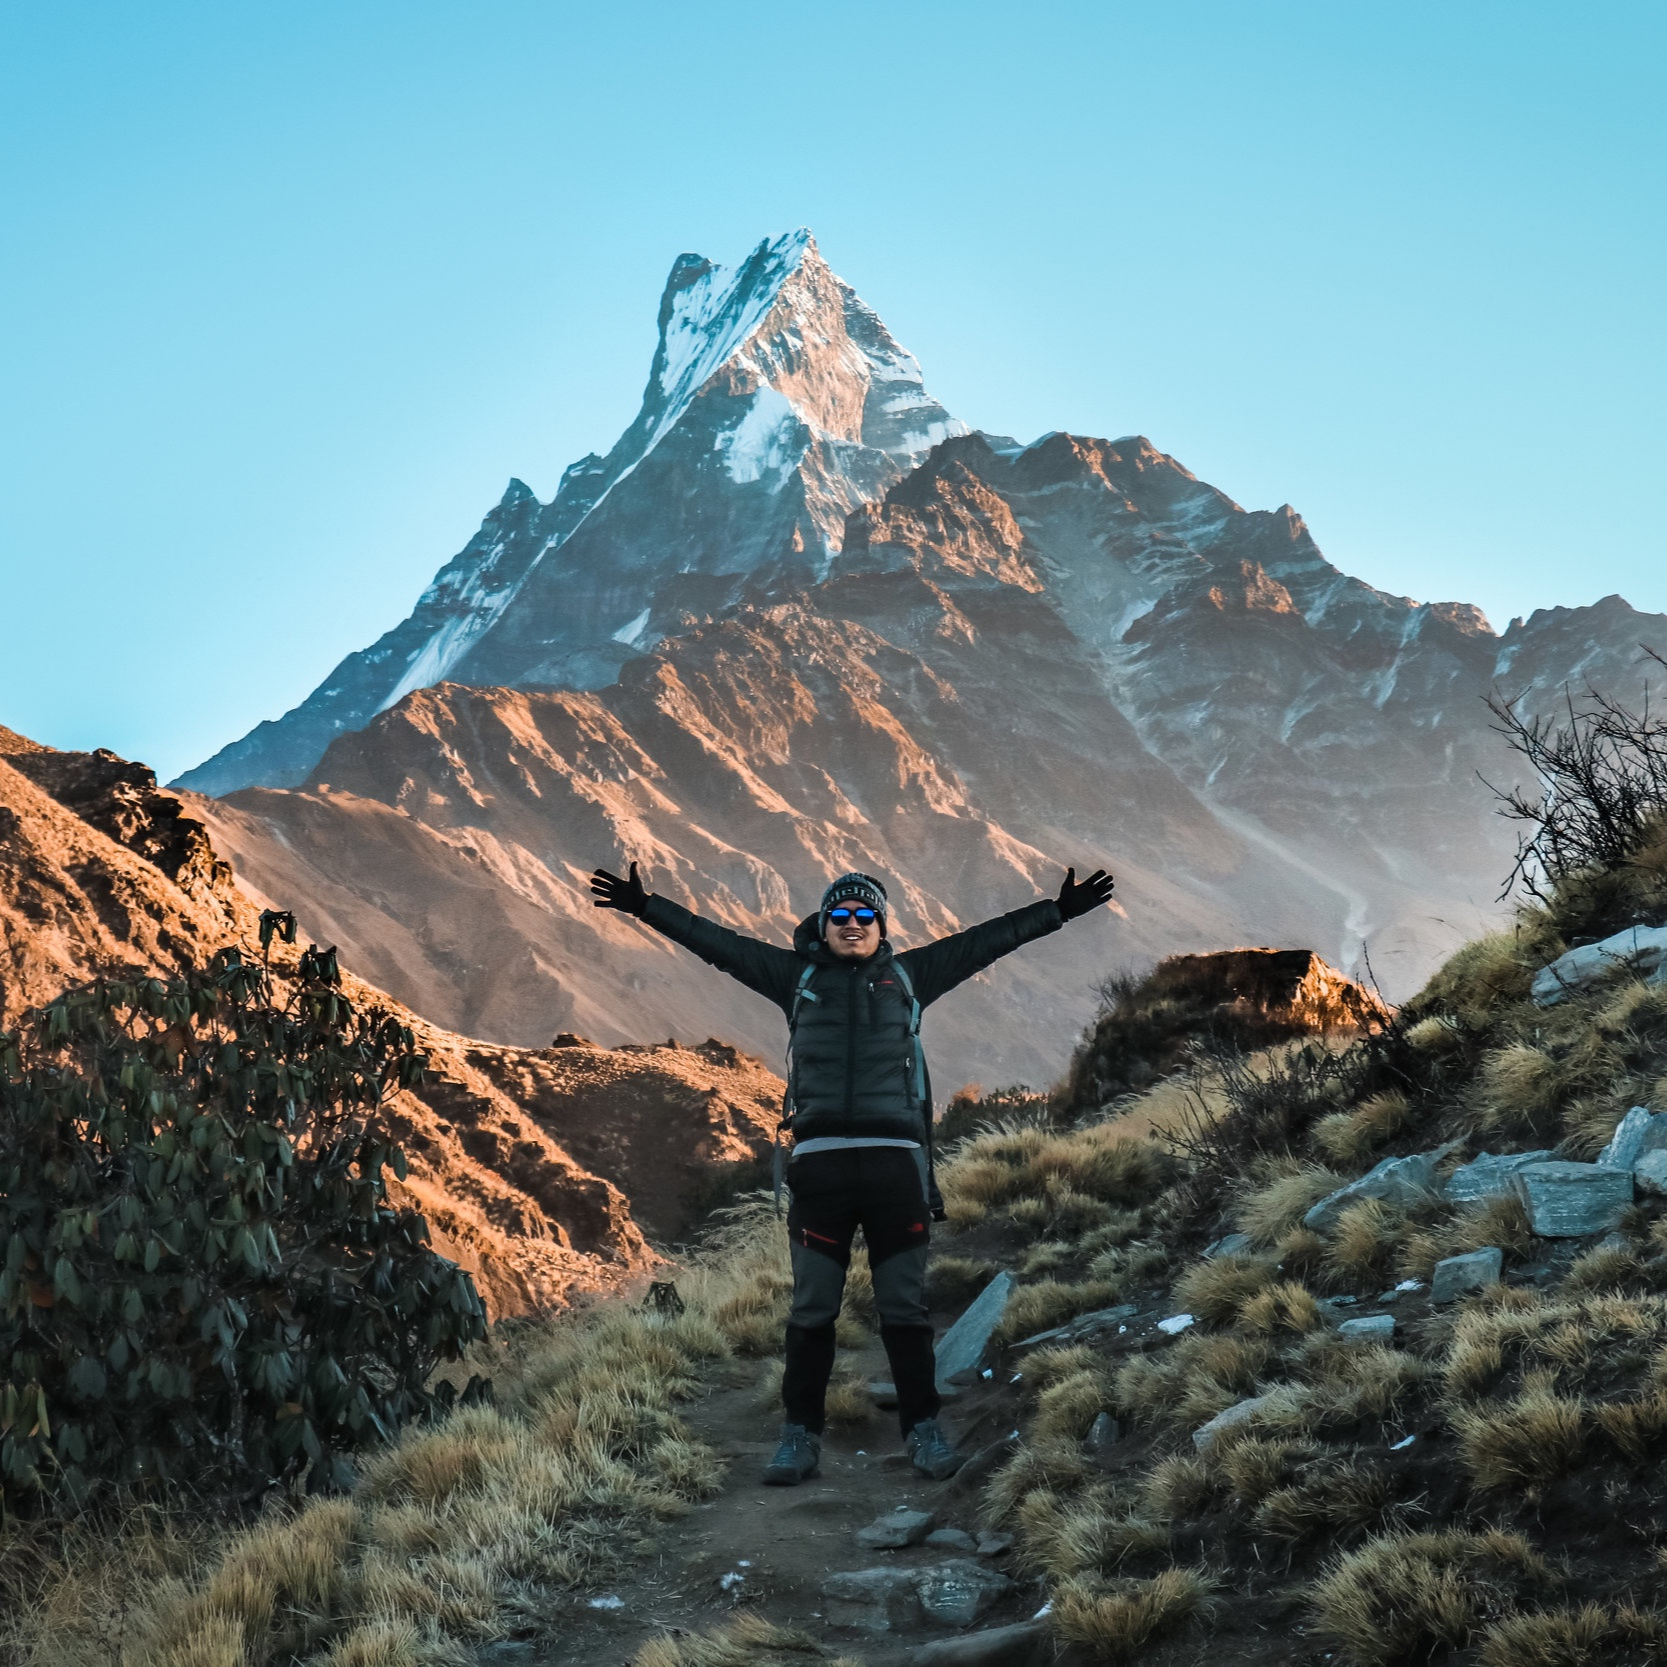 March 21 - Group morning stretching and mindfulnessStreep hike uphill towards DobataDramatic vistas of the iconic Macchapuchare, or Fishtail, dominate the skyline